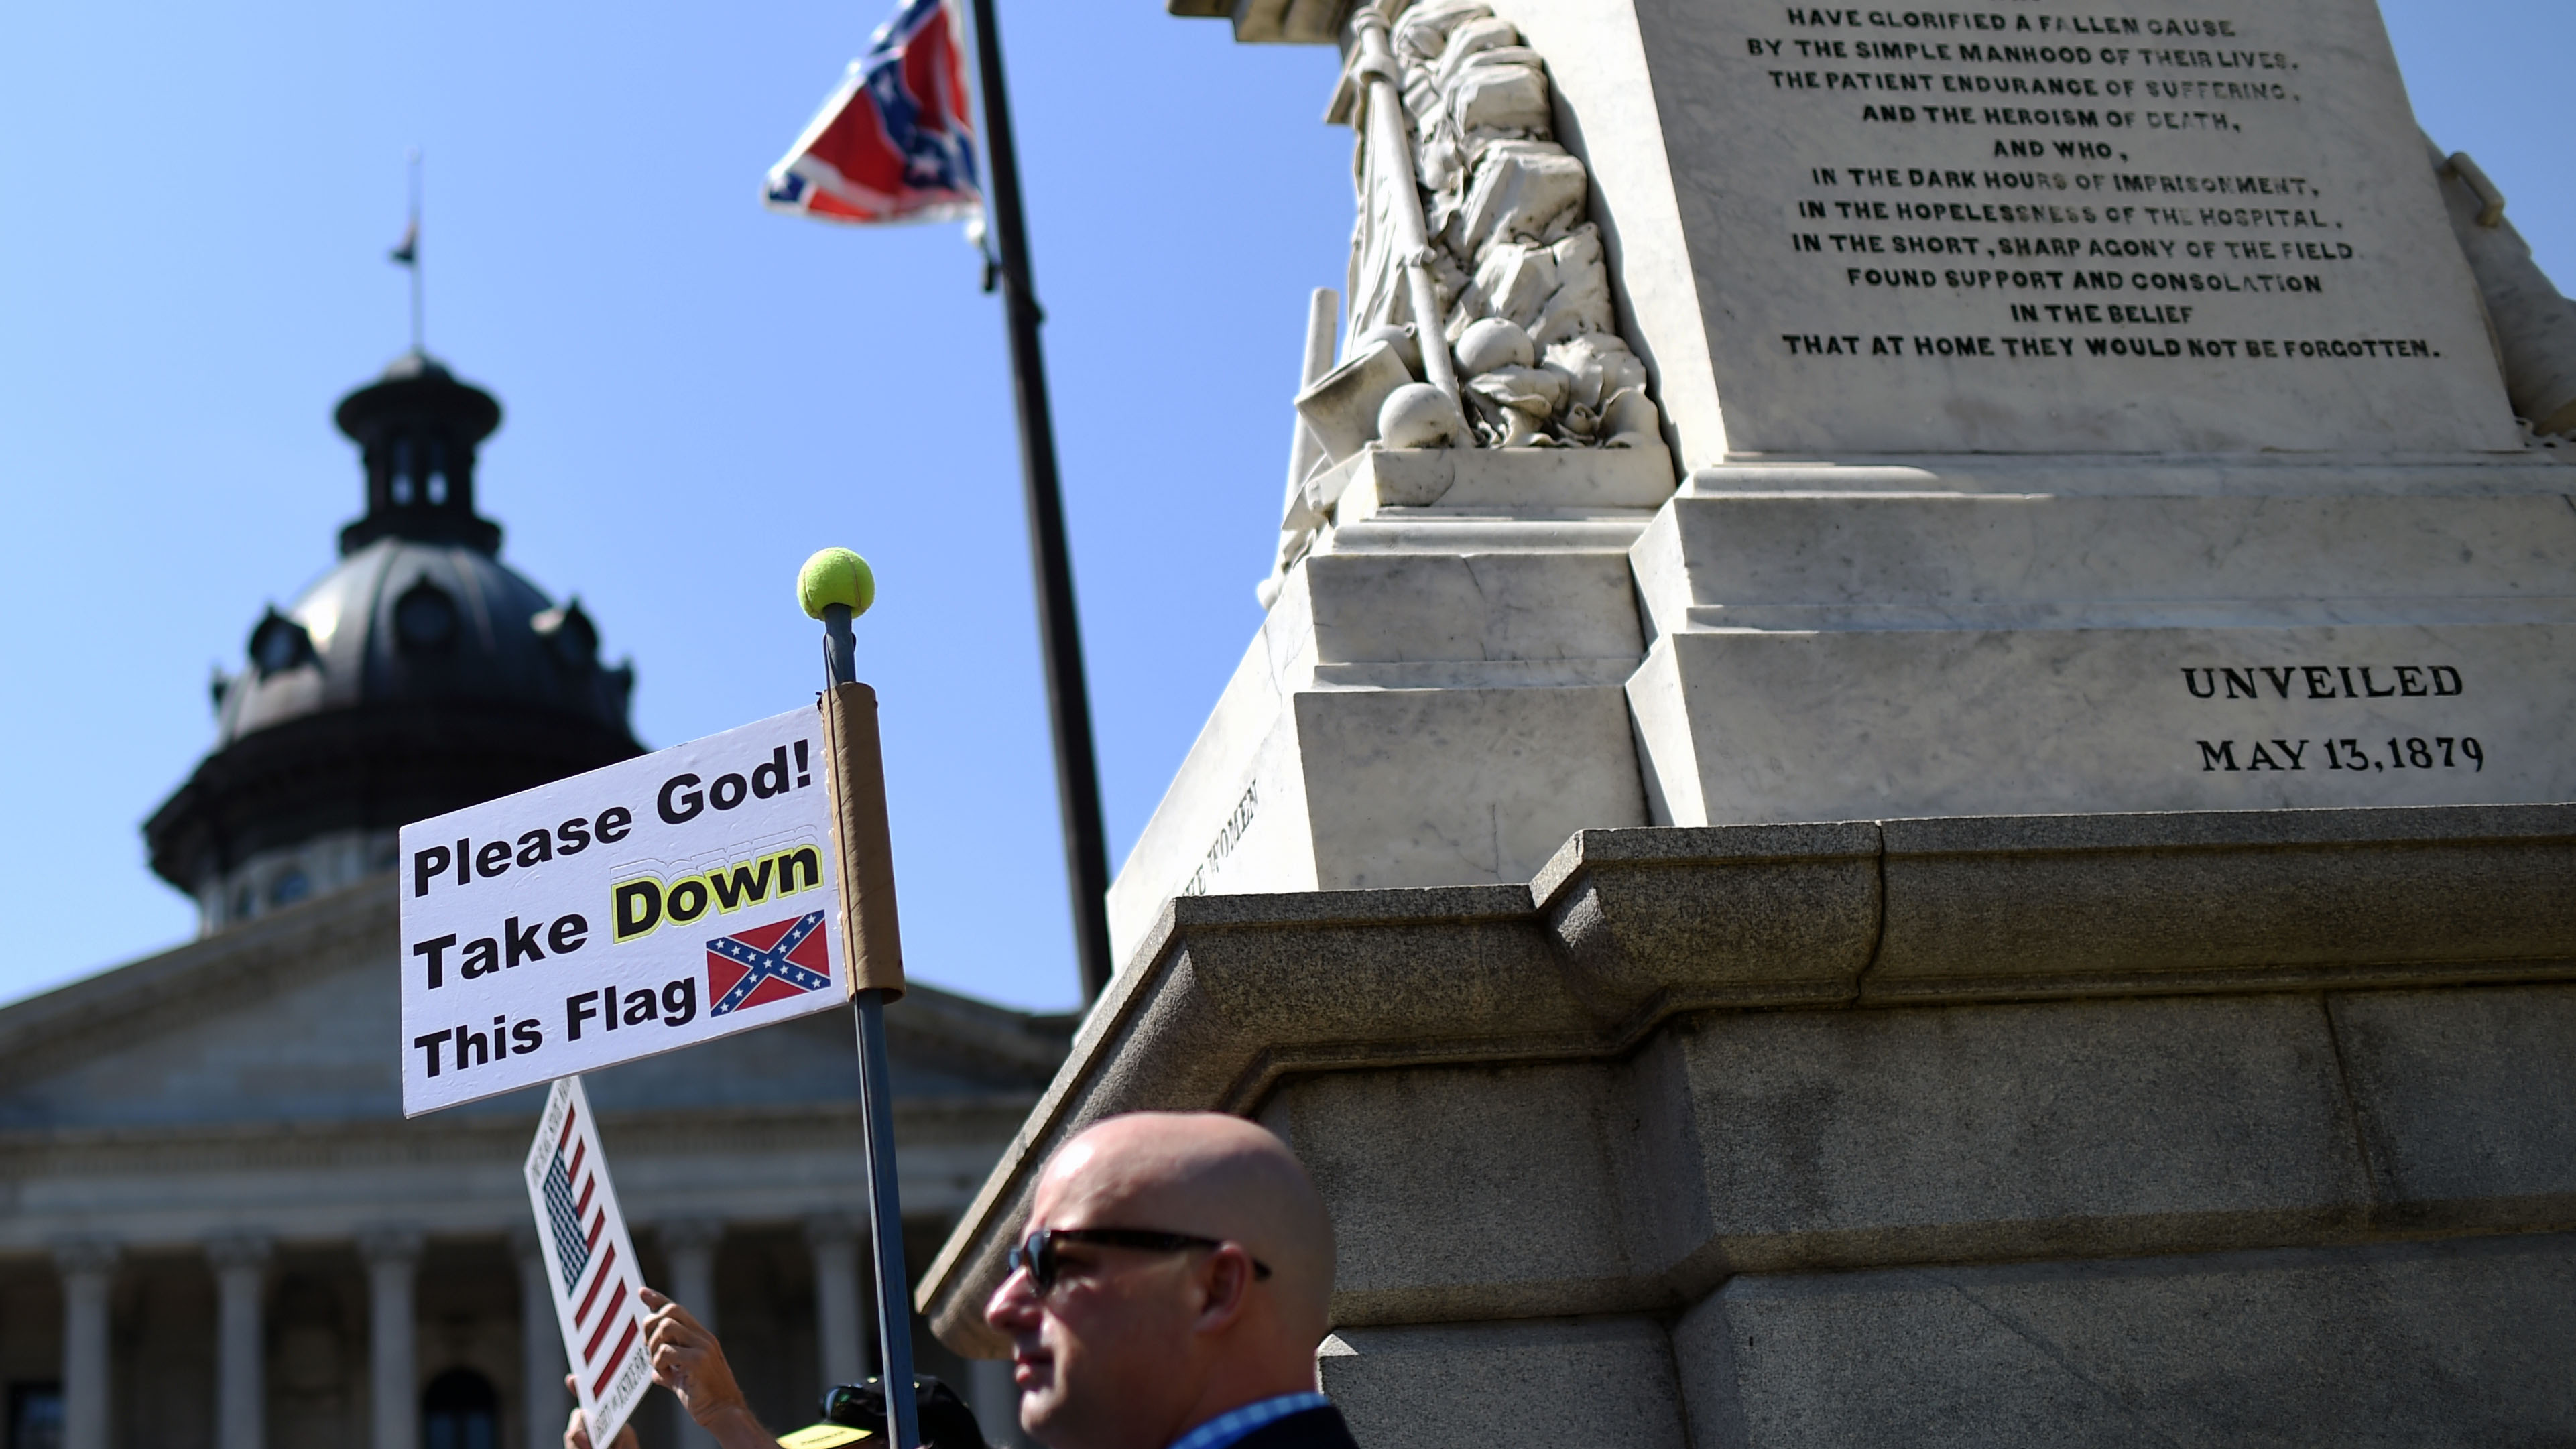 A Columbia, South Carolina, man demands the Confederate flag be removed from the State House grounds at a rally Tuesday. The shooting deaths of nine people at a black church in Charleston have reignited calls for the Confederate flag flying at the State House to come down.